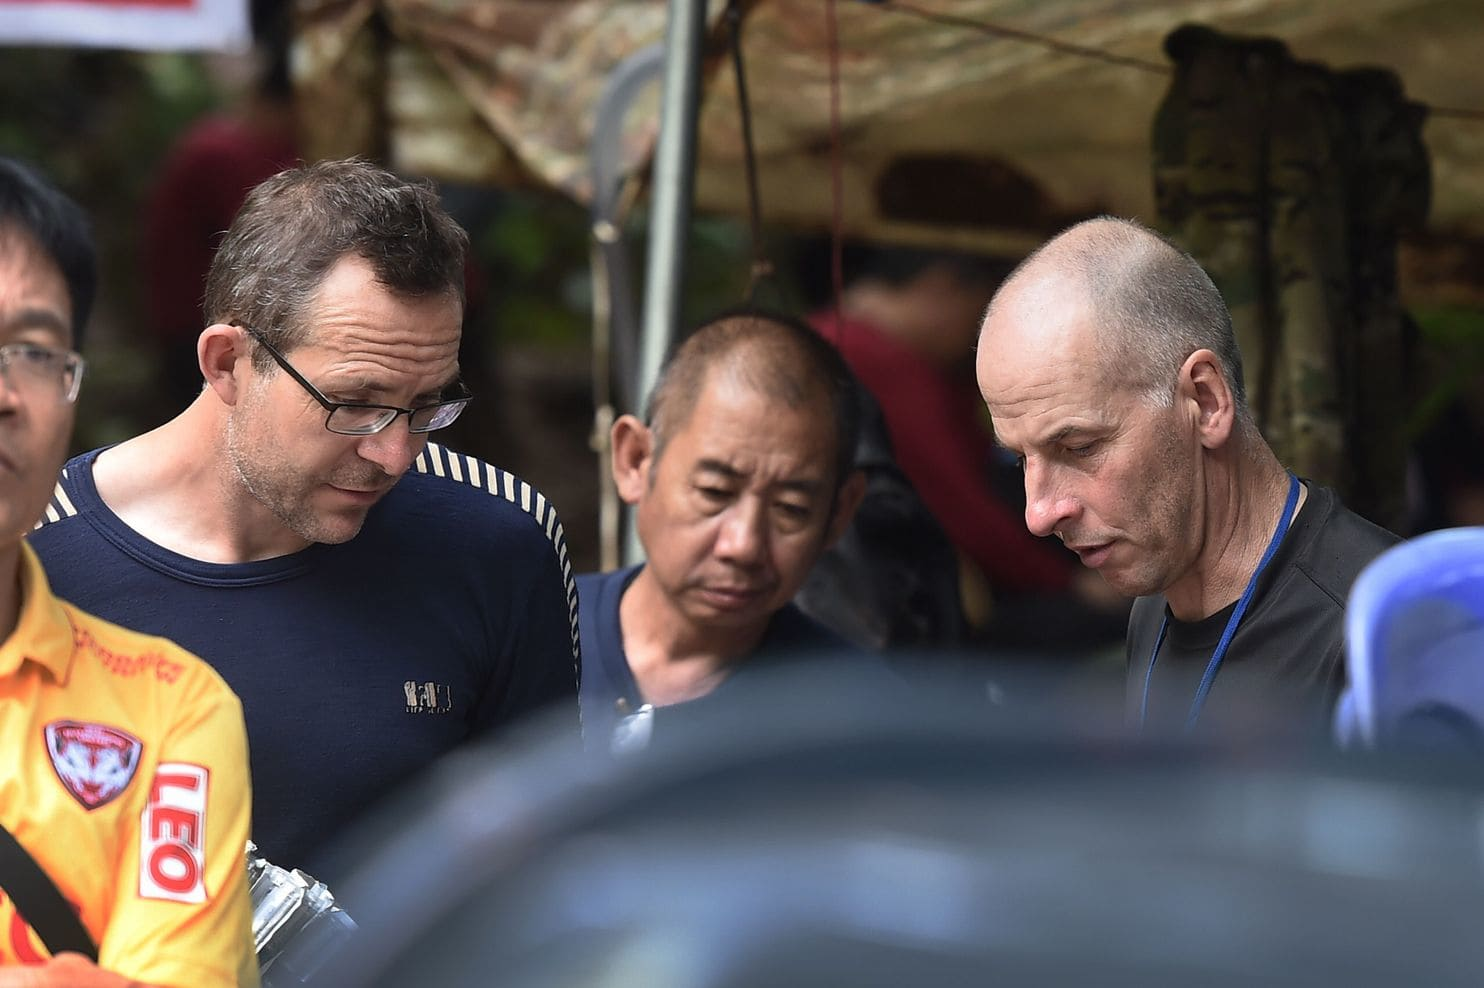 thai cave rescuers, cave rescue divers, award, britain News , tham luang cave, Richard Stanton and John Volanthen